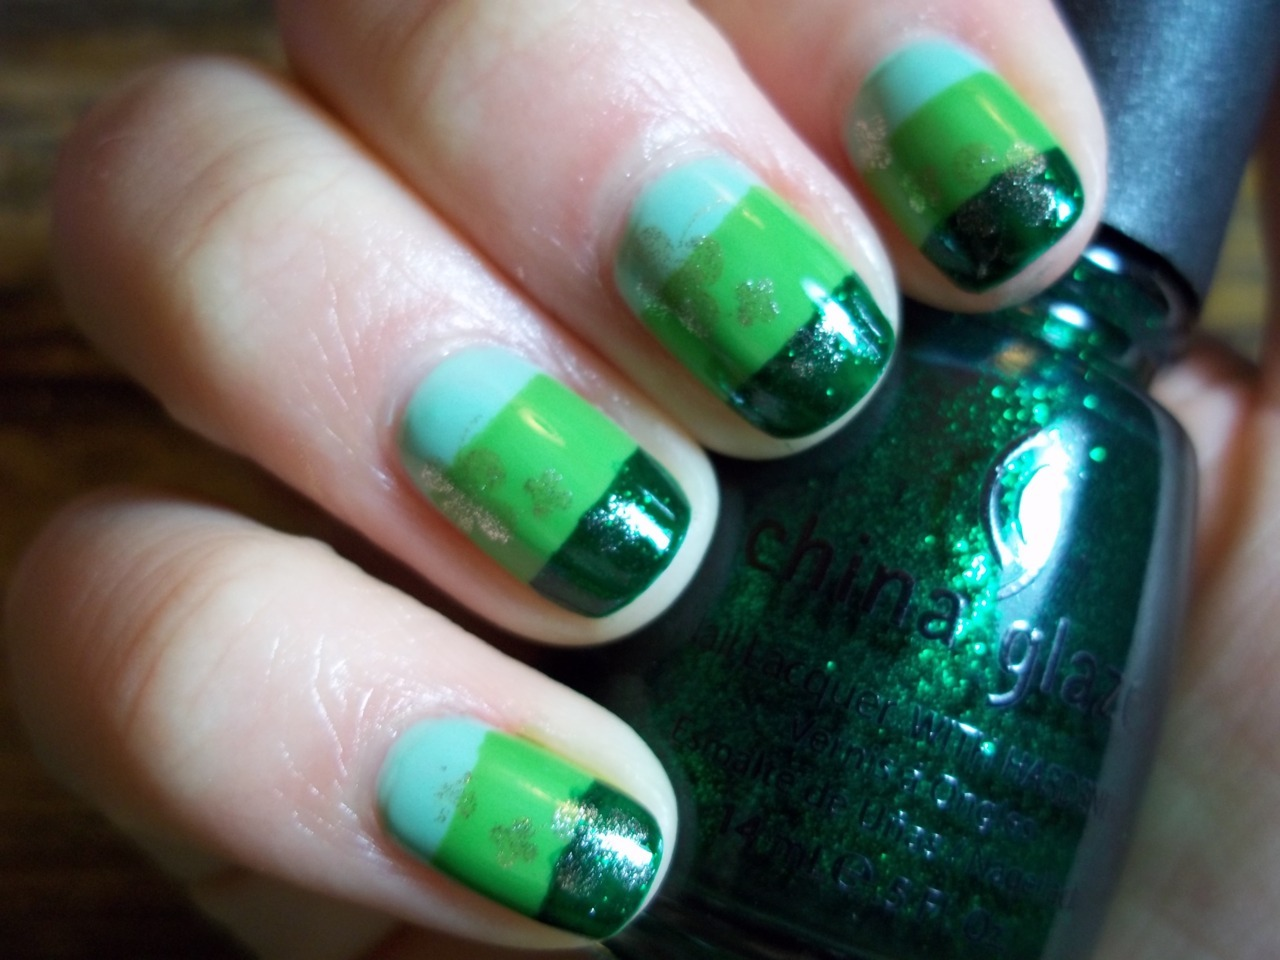 My St. Patrick's day manicure. I used OPI Hey, Get In Lime!, OPI Greenwich Village, and China Glaze Emerald Sparkle (in that order). Orly Luxe was used for the shamrocks. I'm hoping that it chips before the 17th so I can use the excuse for another green manicure (as if I need one…).